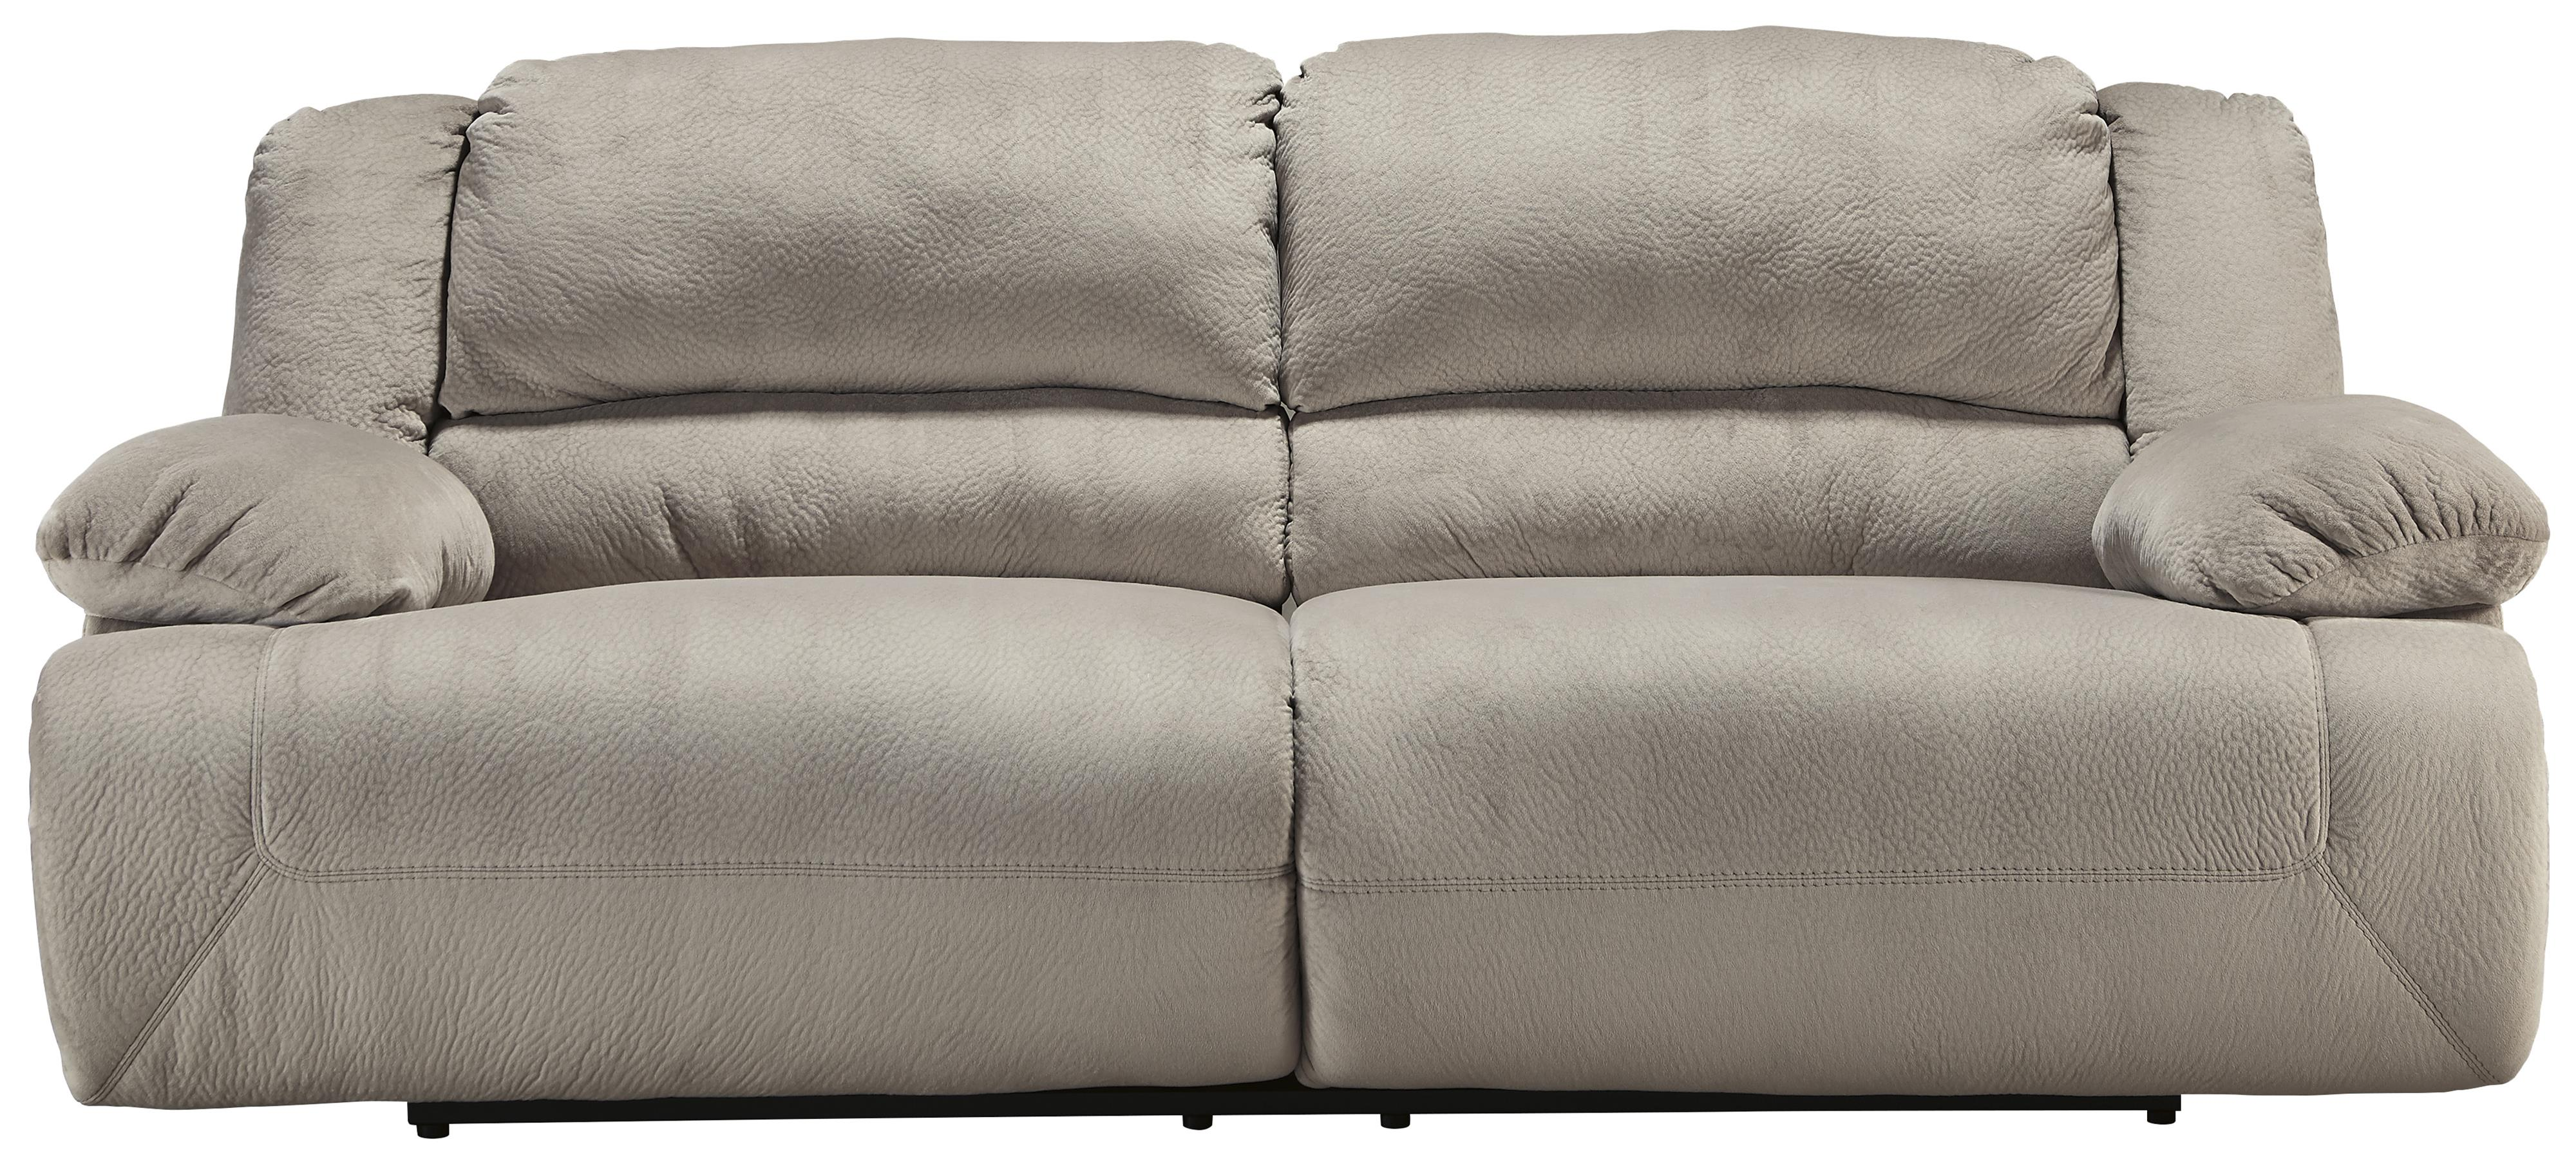 Signature Design by Ashley Toletta - Granite 2 Seat Reclining Power Sofa - Item Number: 5670347